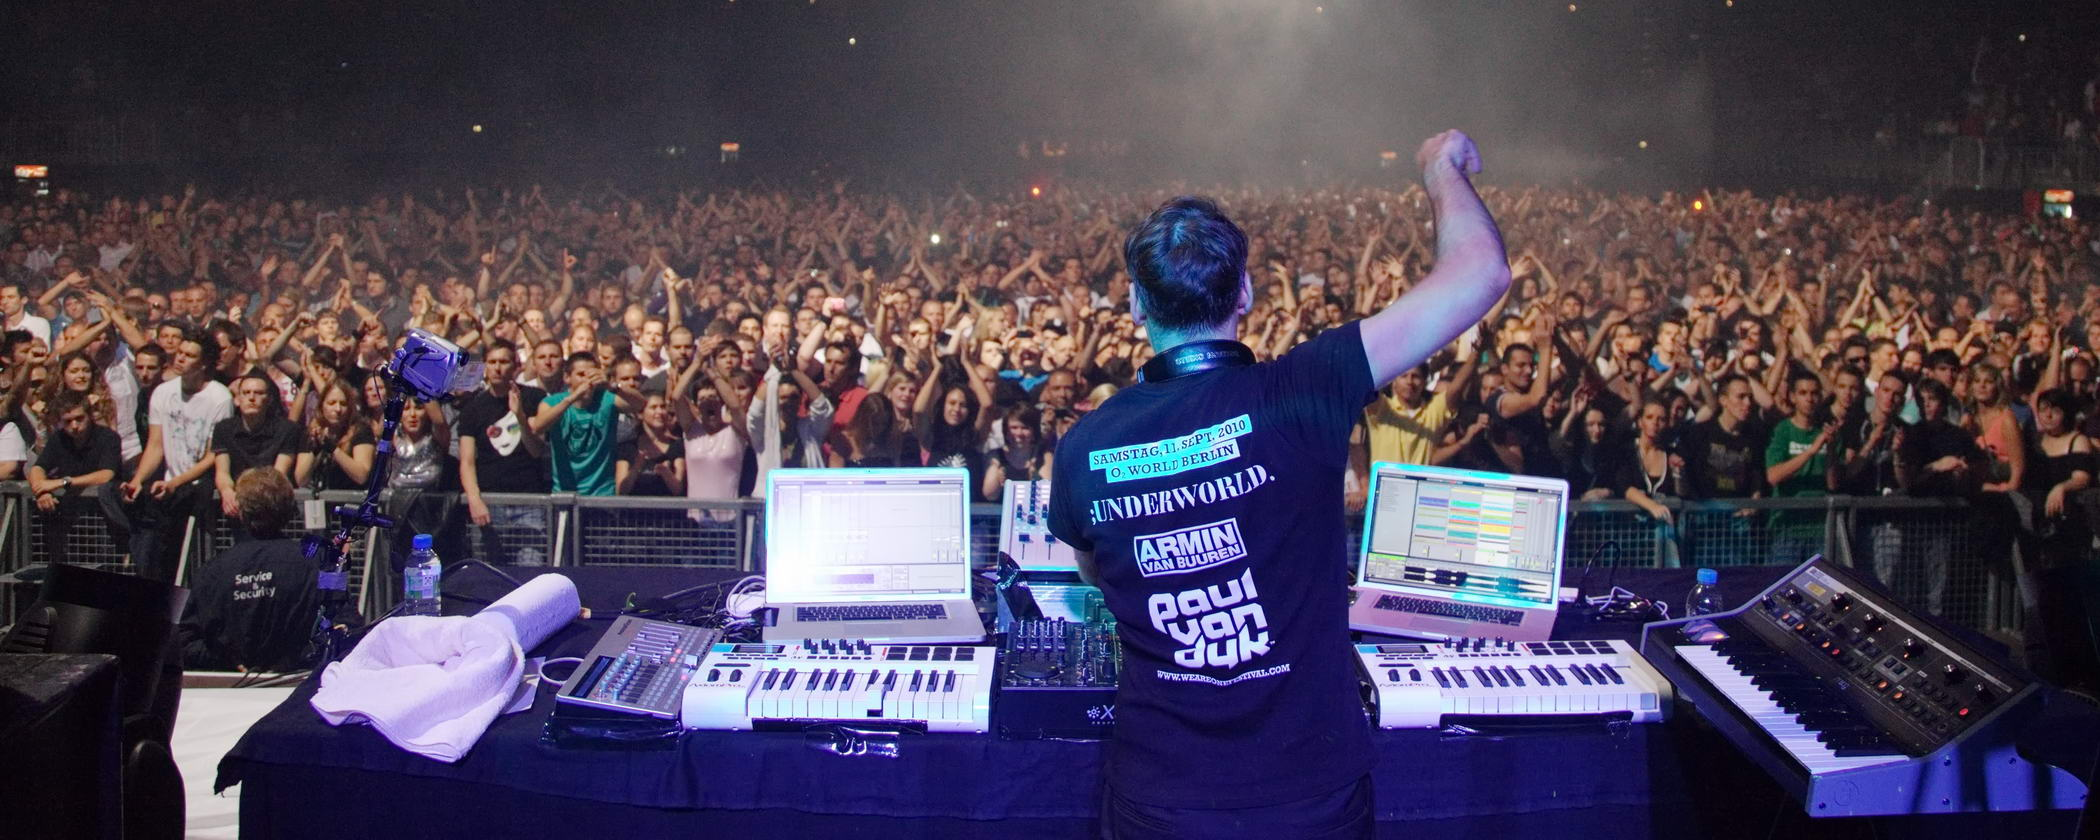 Paul van Dyk - We Are One - Stagephotographer Gregor Anthes